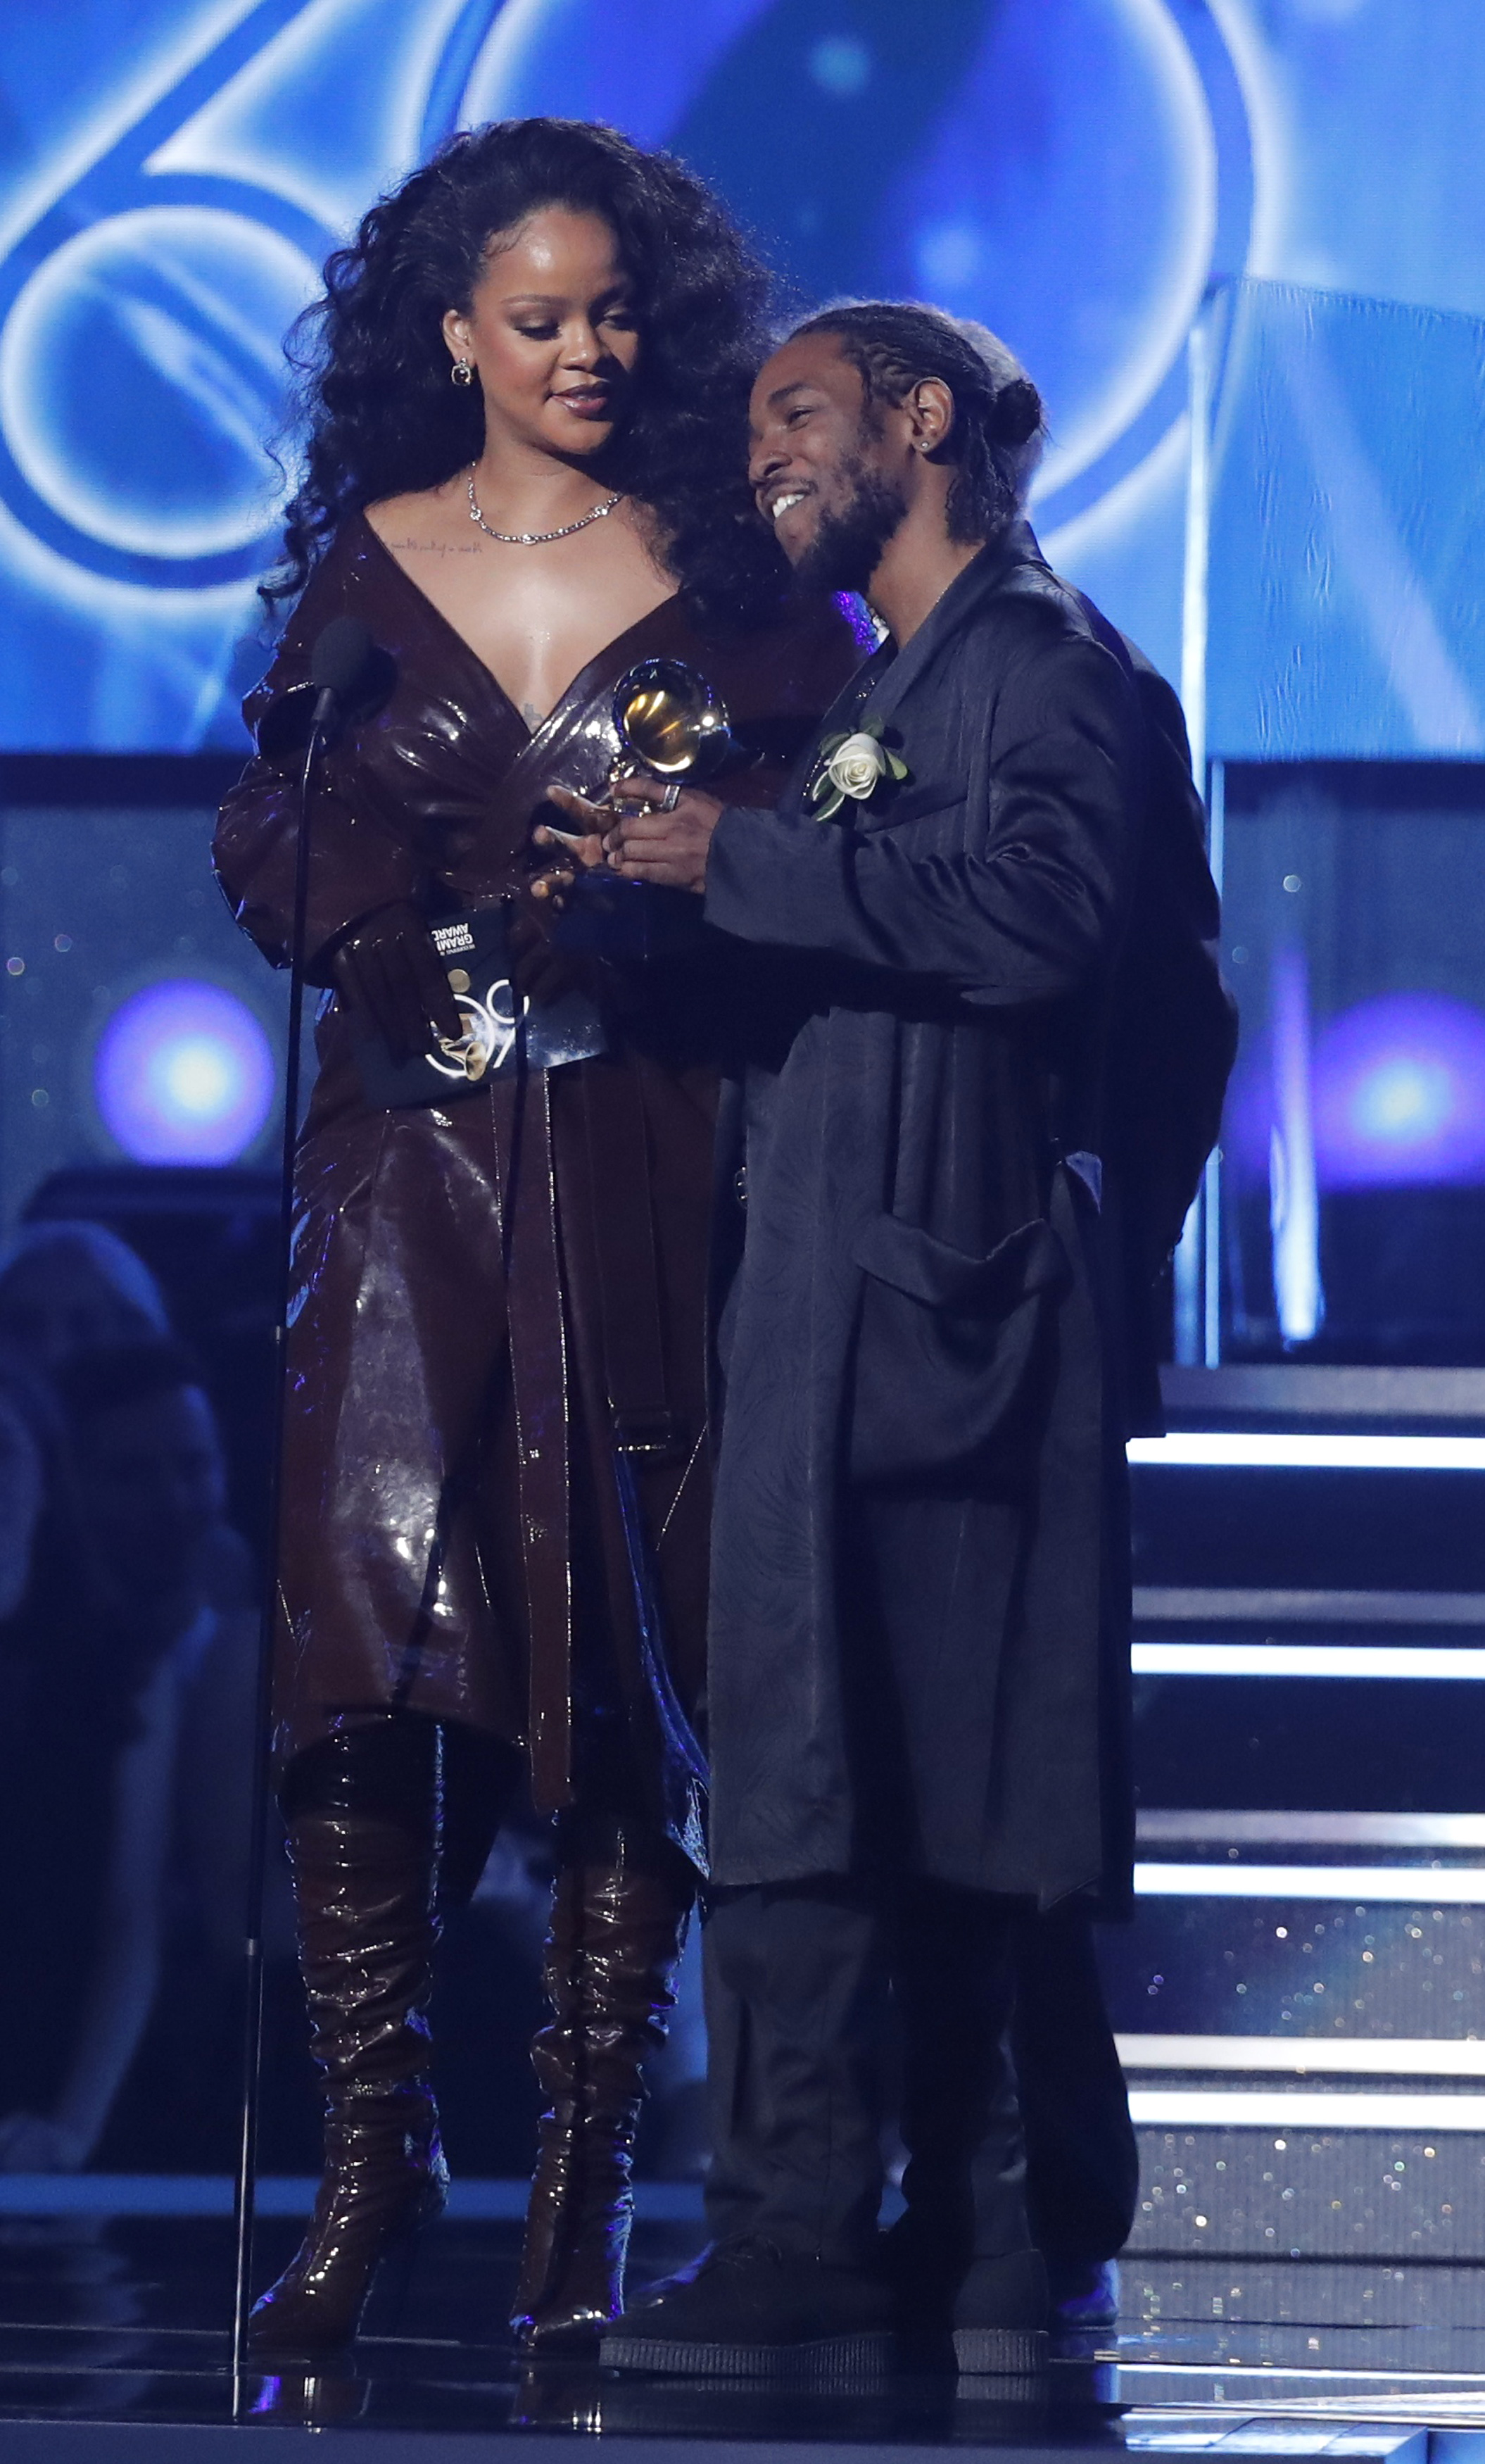 60th Annual Grammy Awards  Show  New York, U.S., 28/01/2018  Kendrick Lamar and Rihanna accept the Grammy for best rap/sung performance for